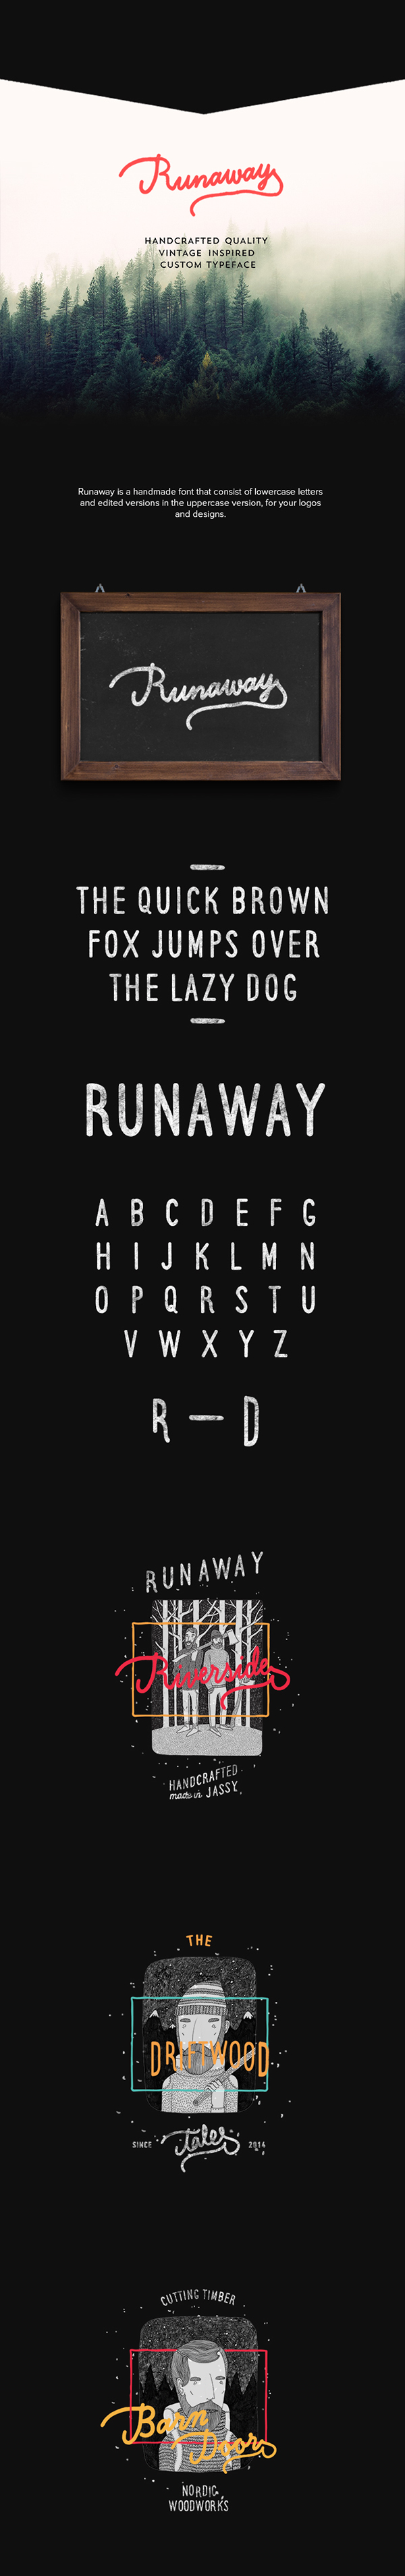 font handmade hand drawn lettering type Runaway Typeface vintage Retro free HAND LETTERING Free font